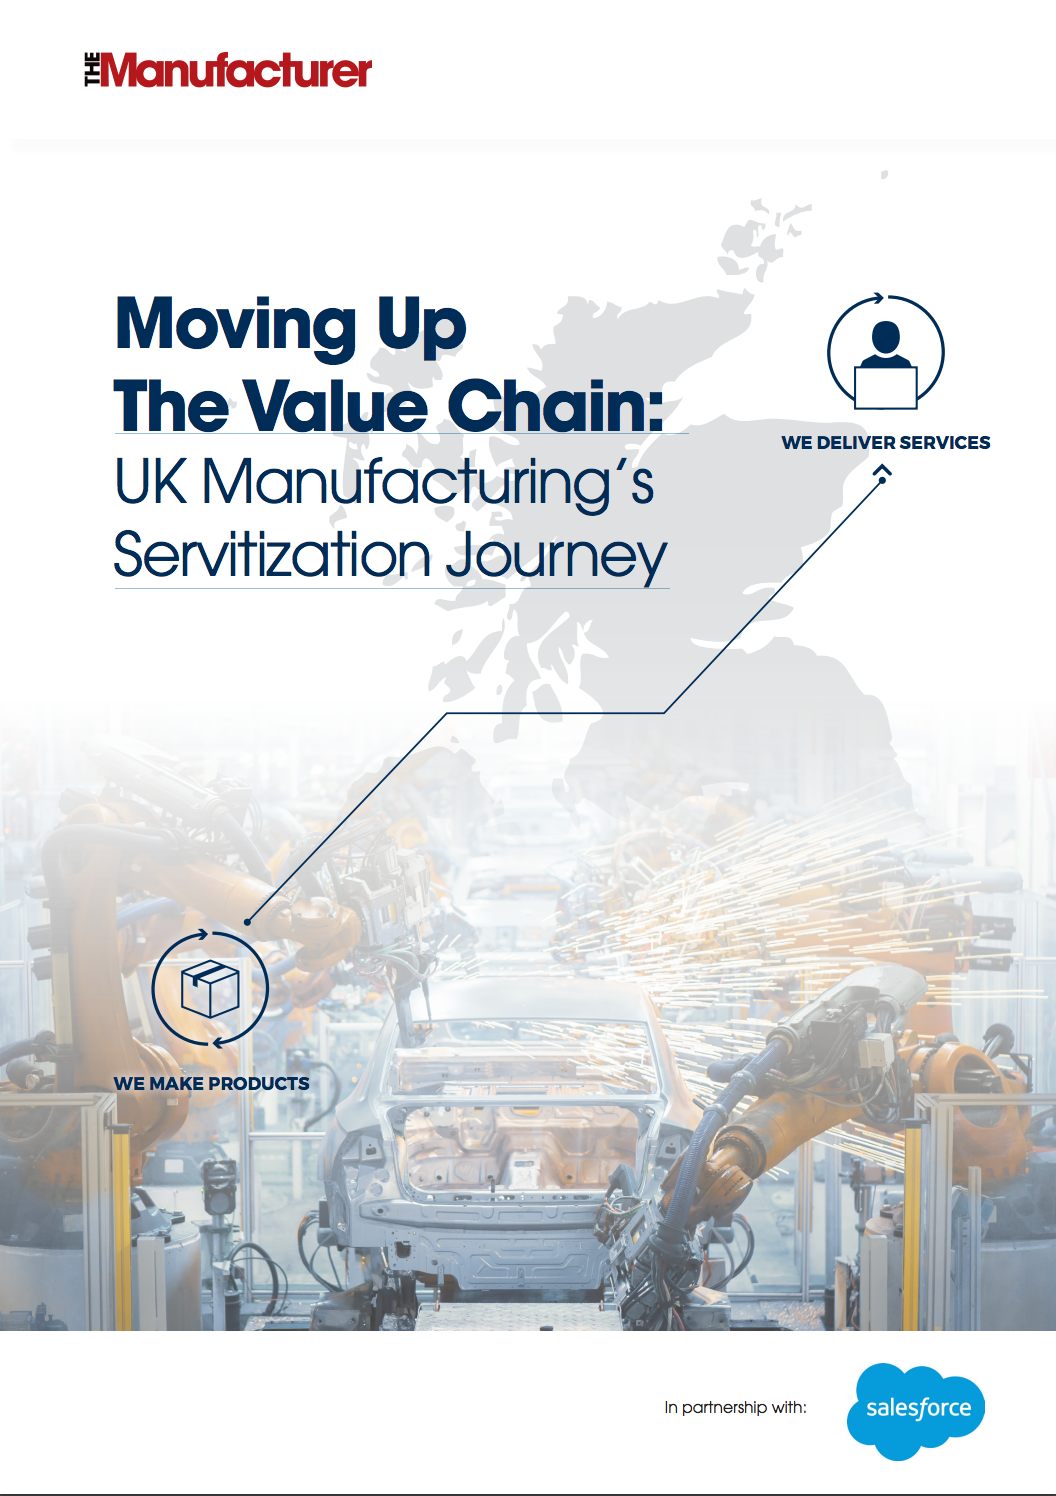 Moving Up The Value Chain: UK Manufacturing's Servitization Journey